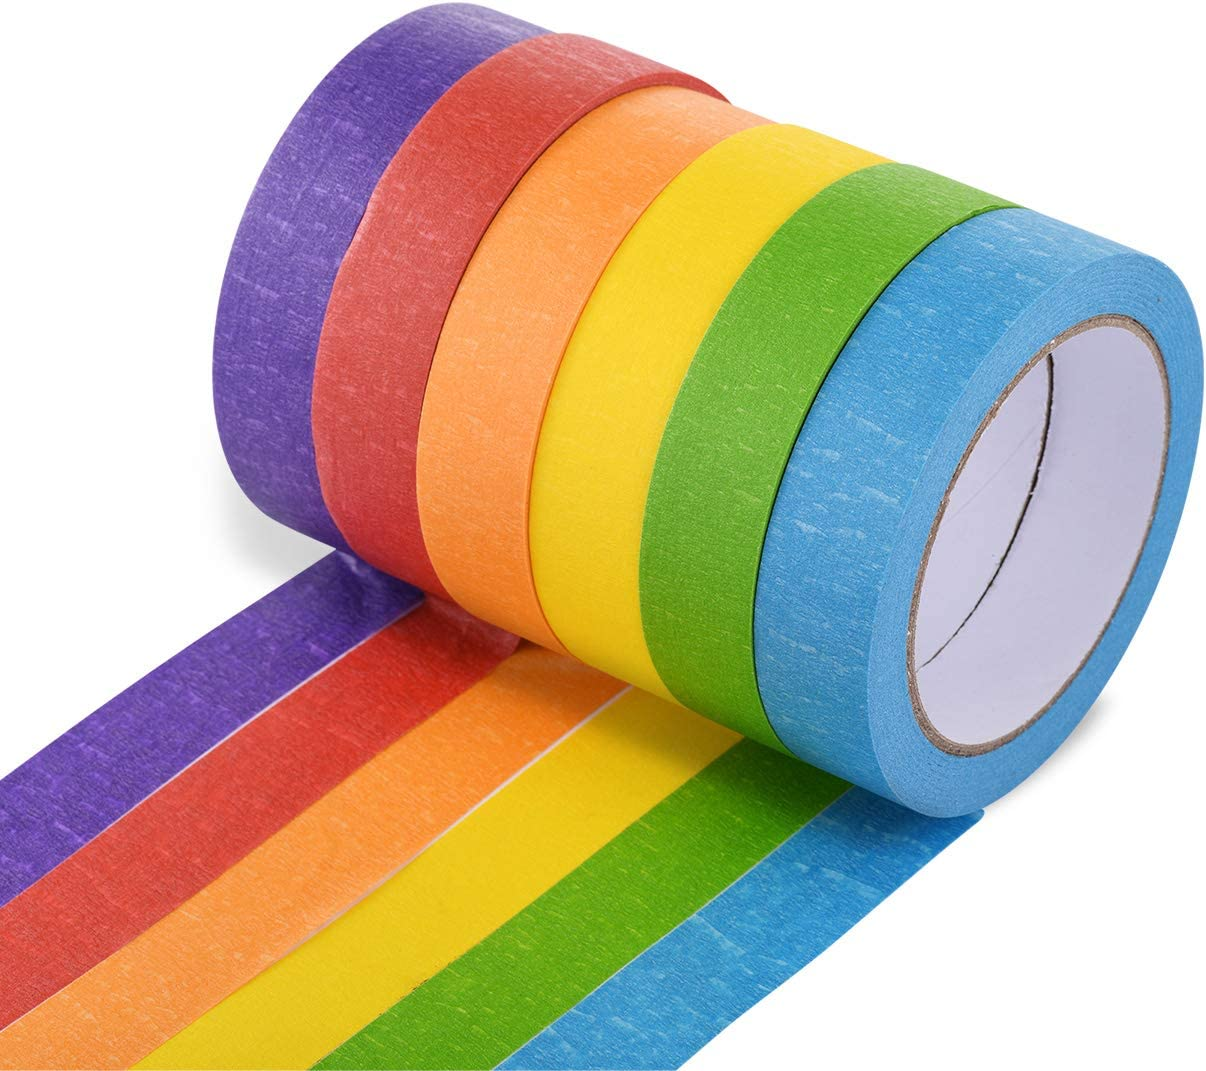 Colored Masking Tape 6 Pieces 1 Inch x 30 Yard Rainbow Masking Tape Labelling Tape, Assorted Color Coded & Kids DIY Art Supplies, Home Decoration, Office Supplies (6 Color)